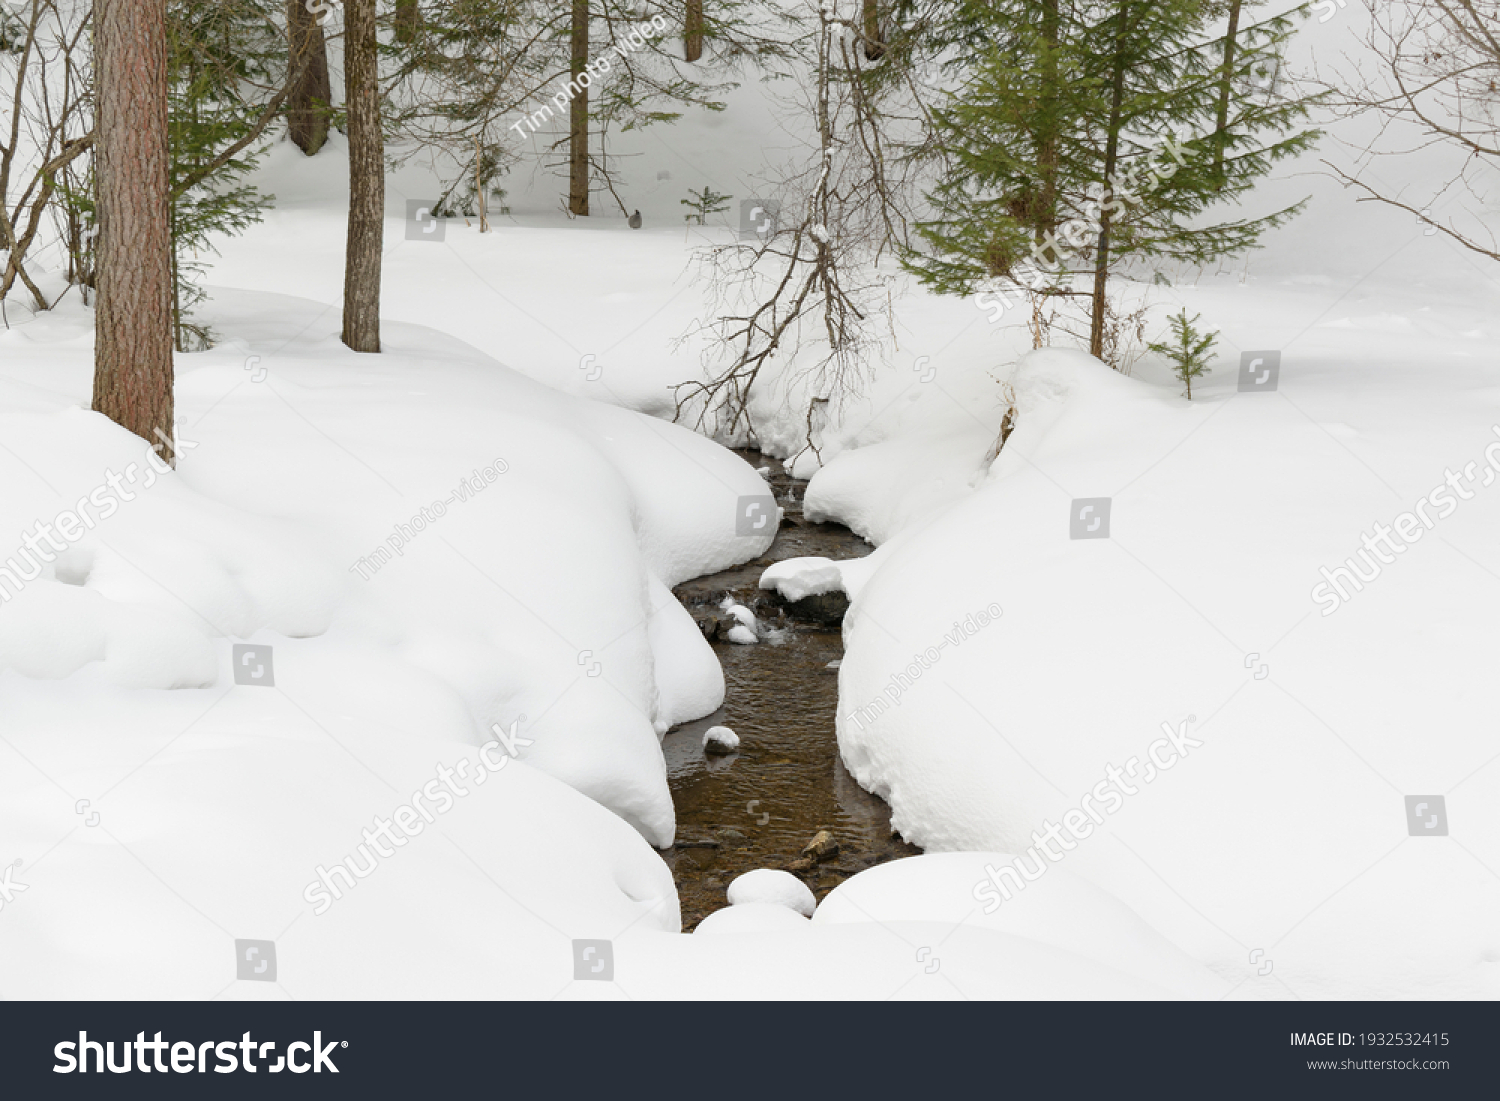 stock-photo-stream-in-the-winter-forest-